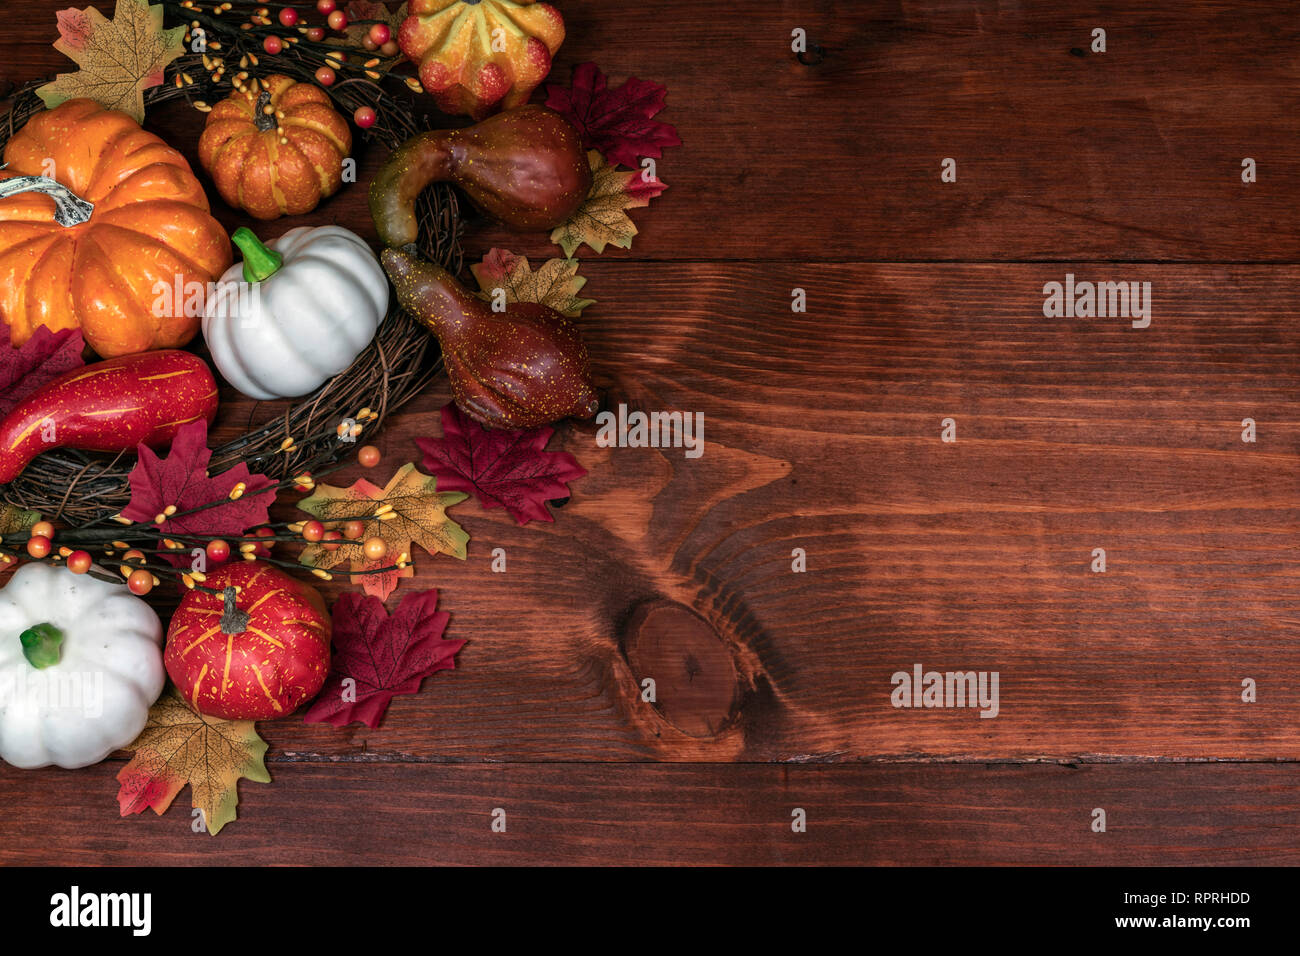 Thanksgiving decor with pumpkins, gourd, squash, maple leaves and berries Stock Photo